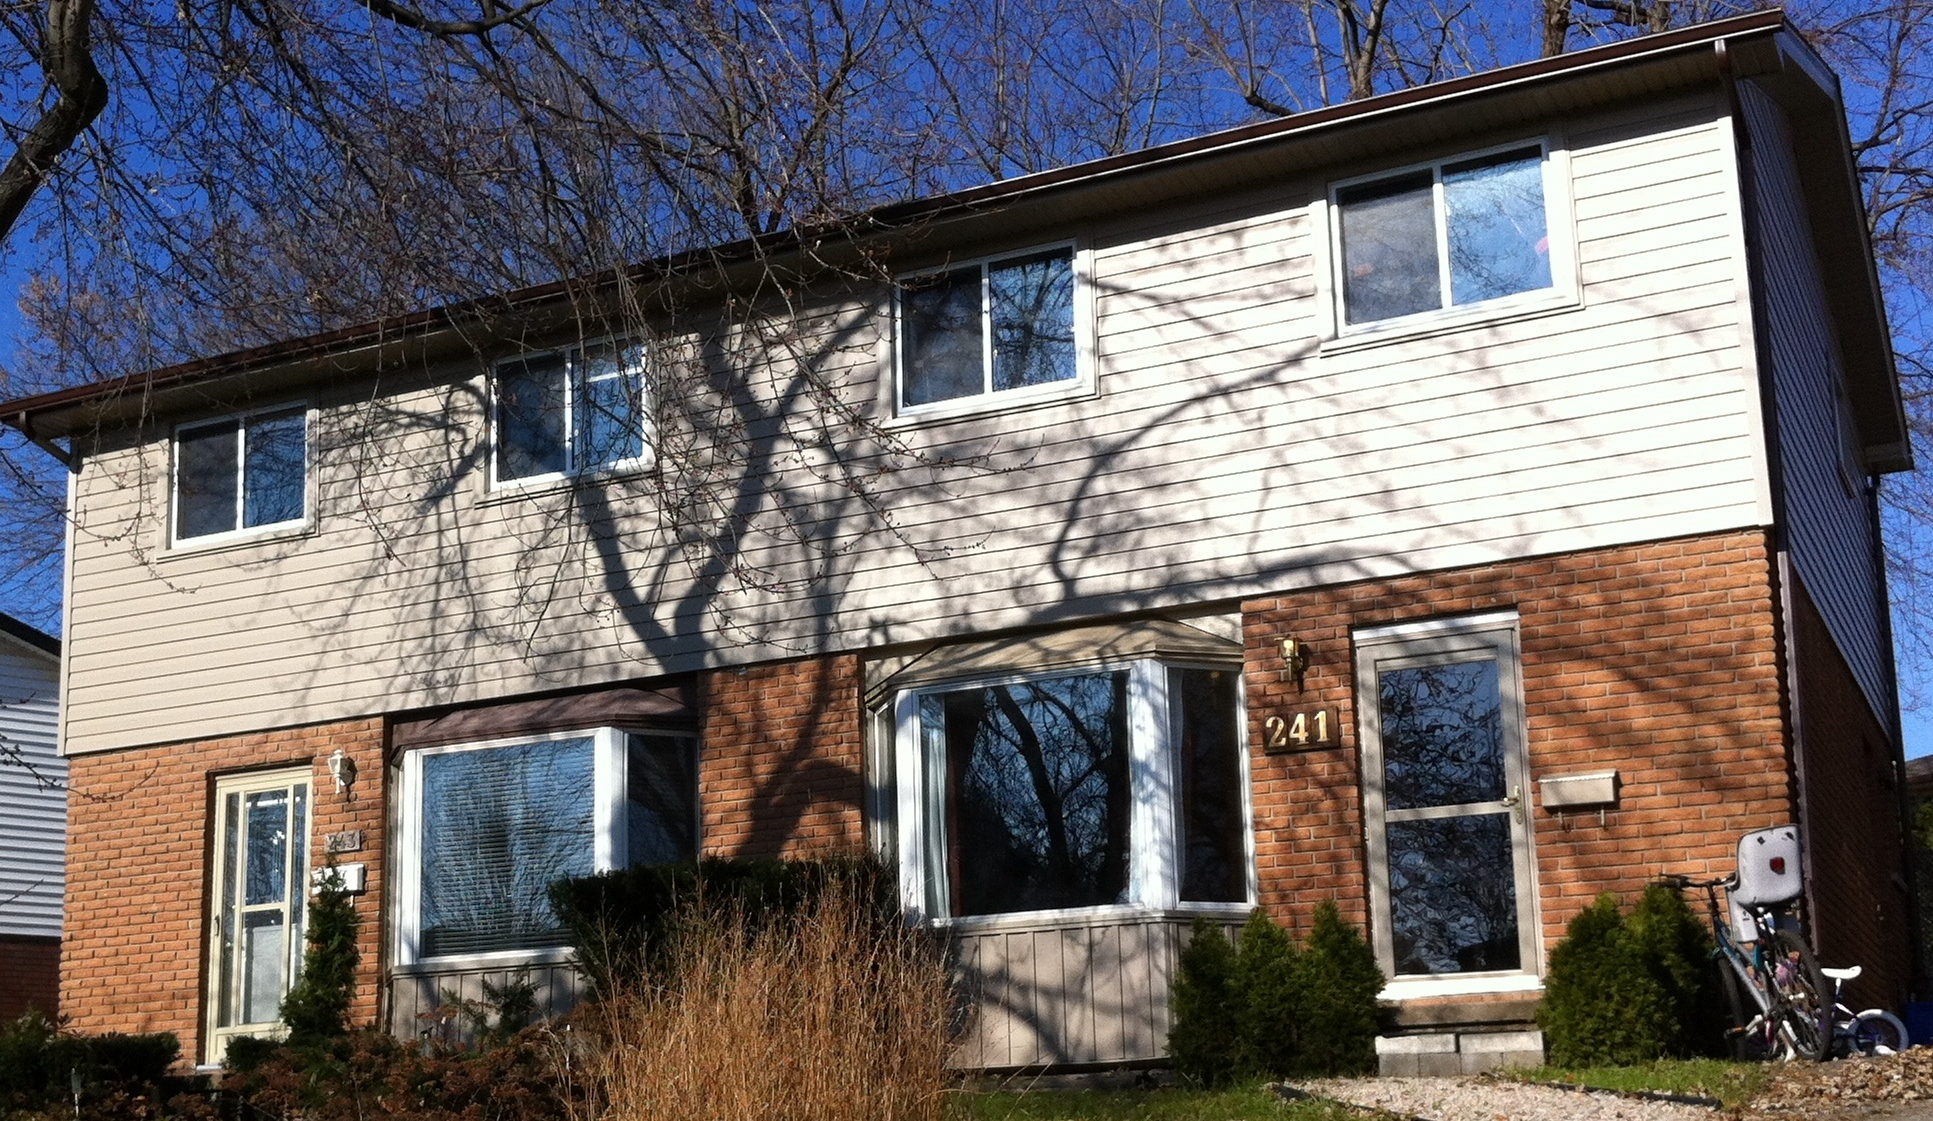 New Siding Soffit Fascia and Trough as well as New Windows on Both Units